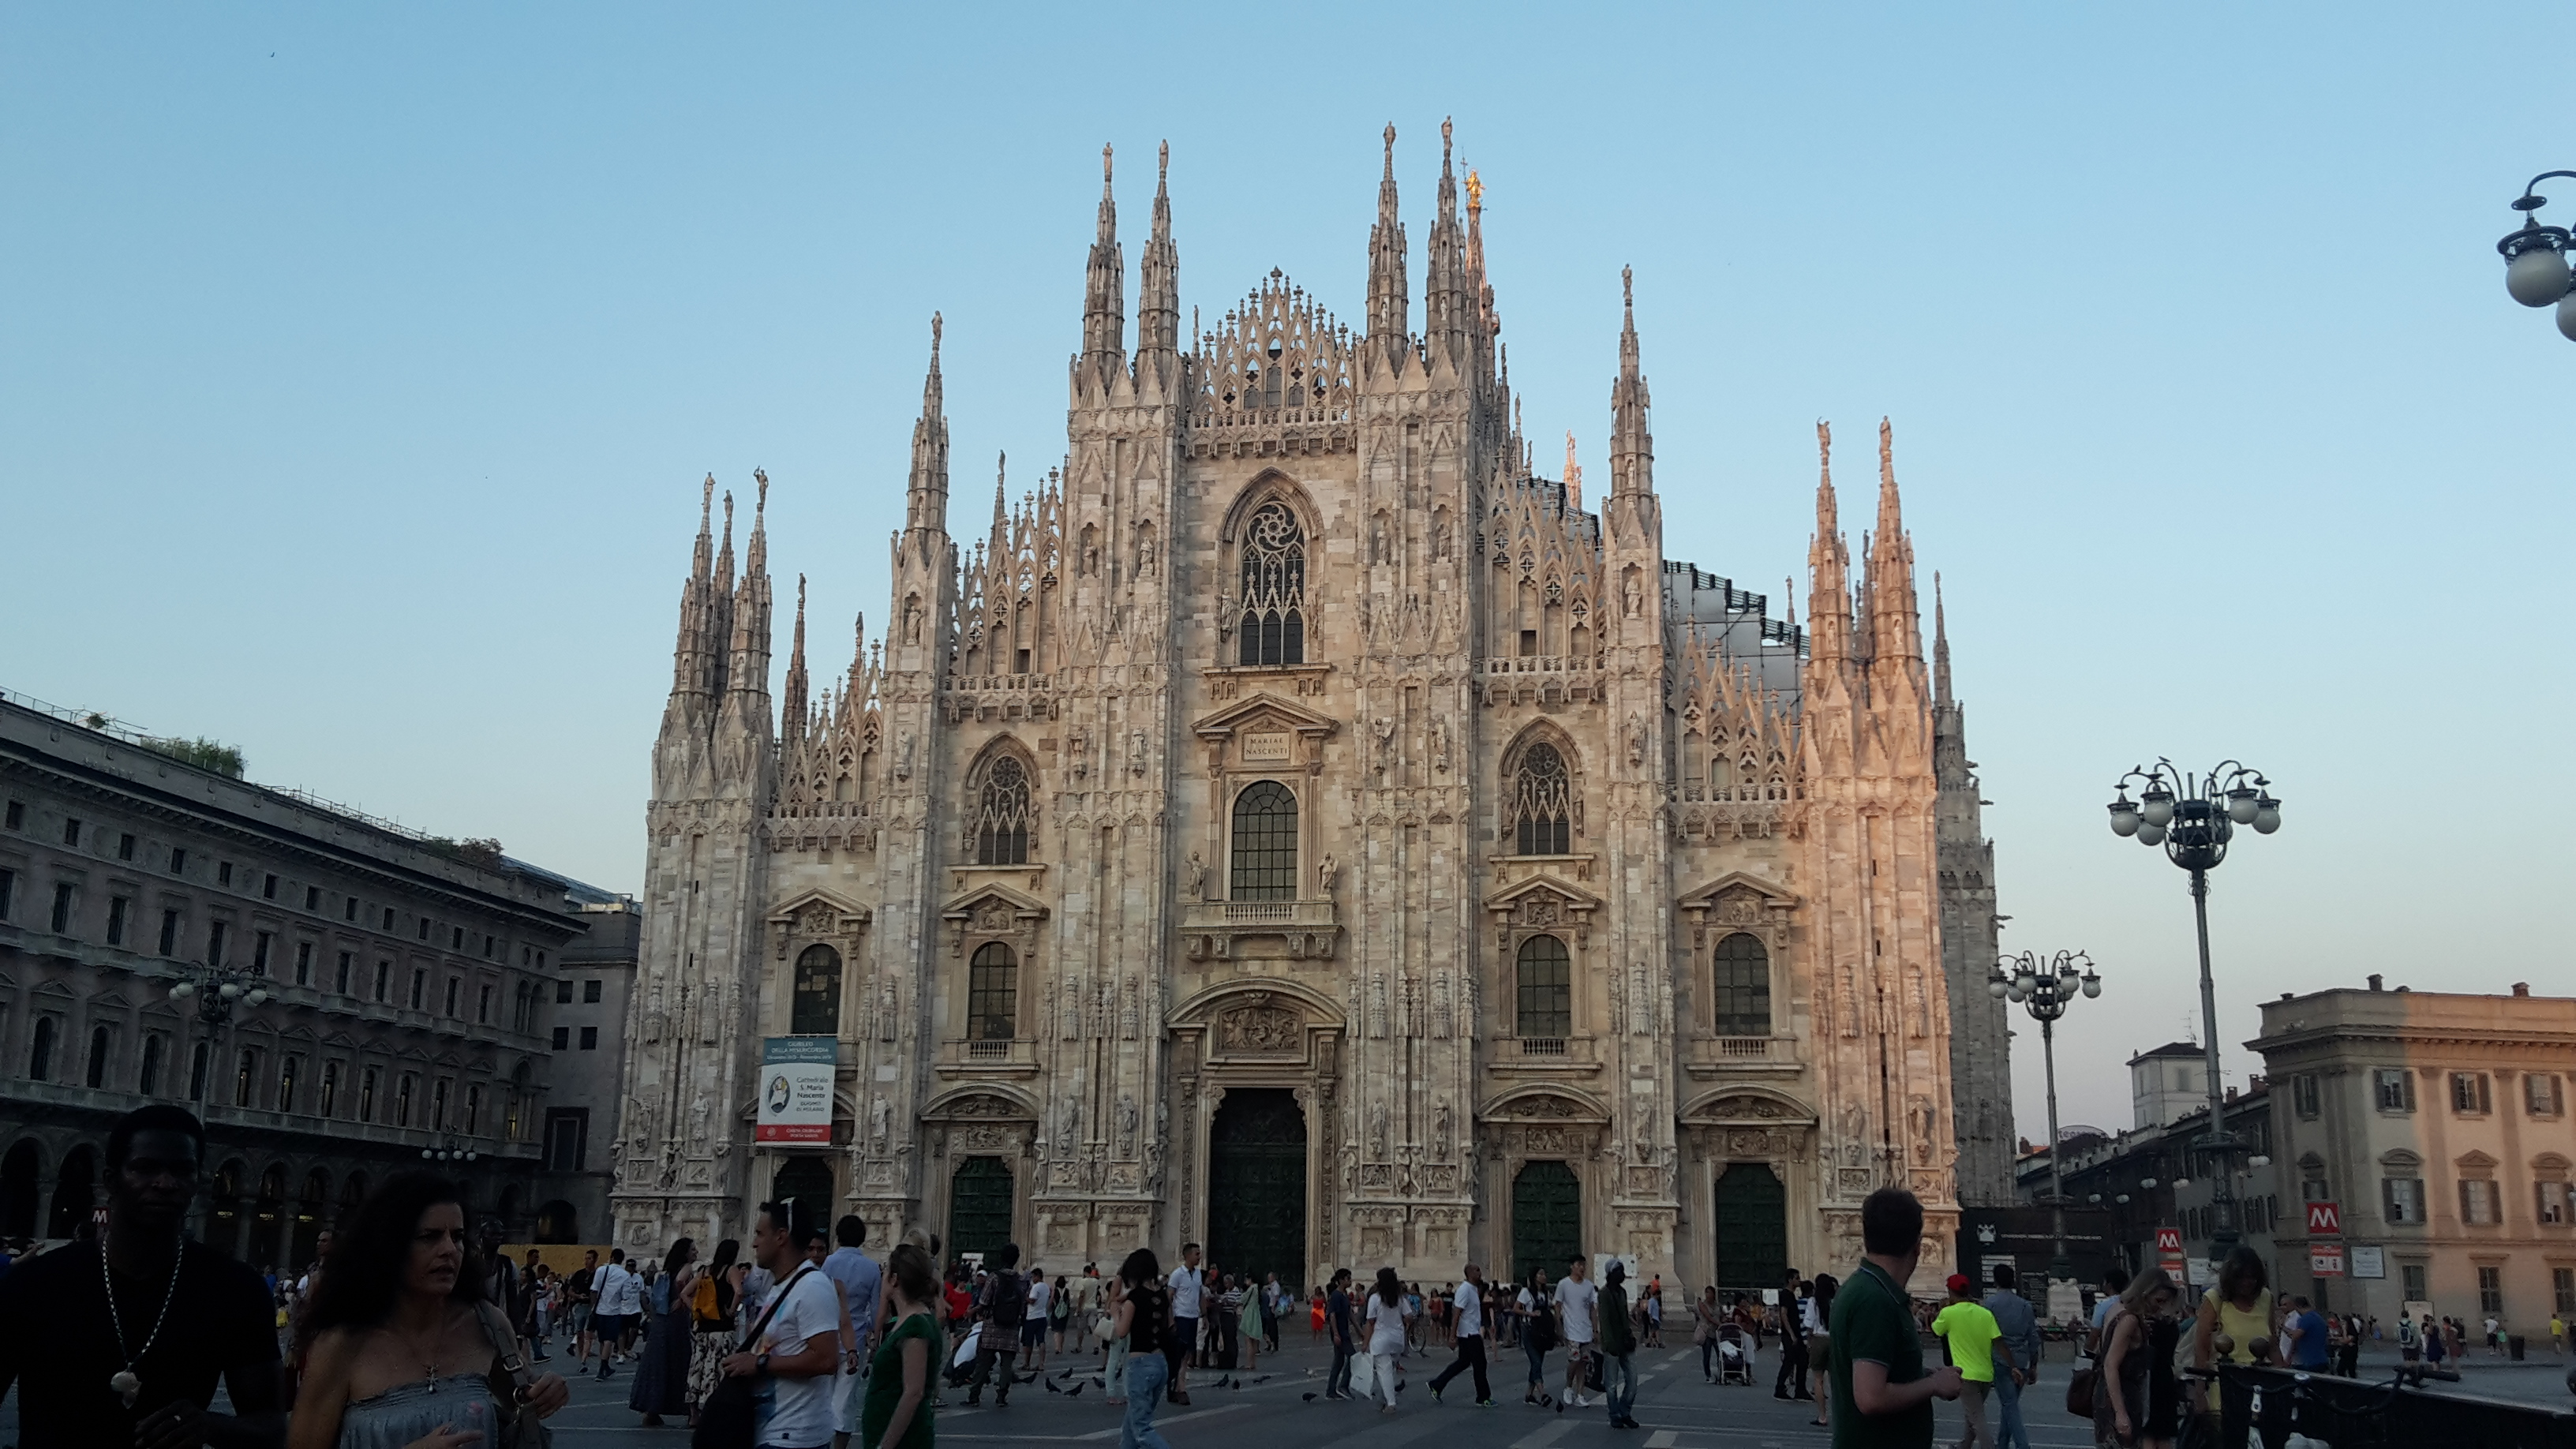 The Milan Duomo (cathedral)